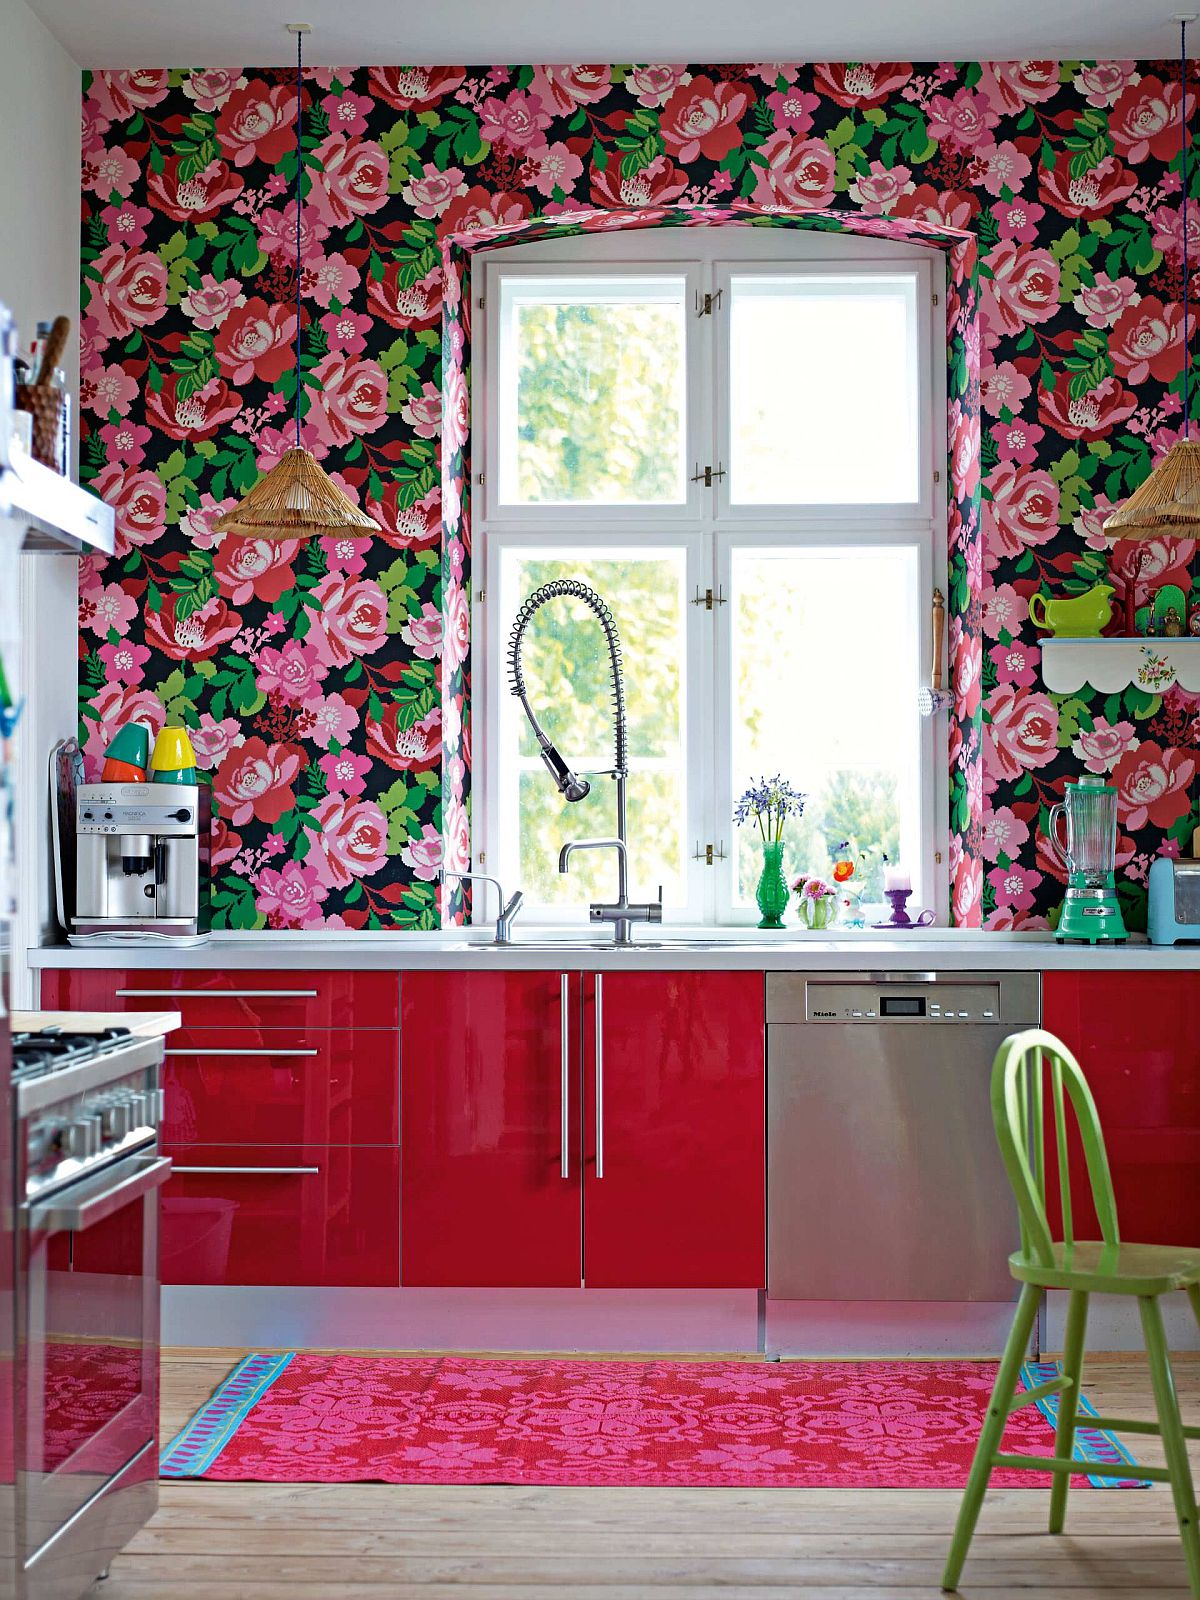 Floral brilliance sweeps you off your feet in this smart, modern kitchen